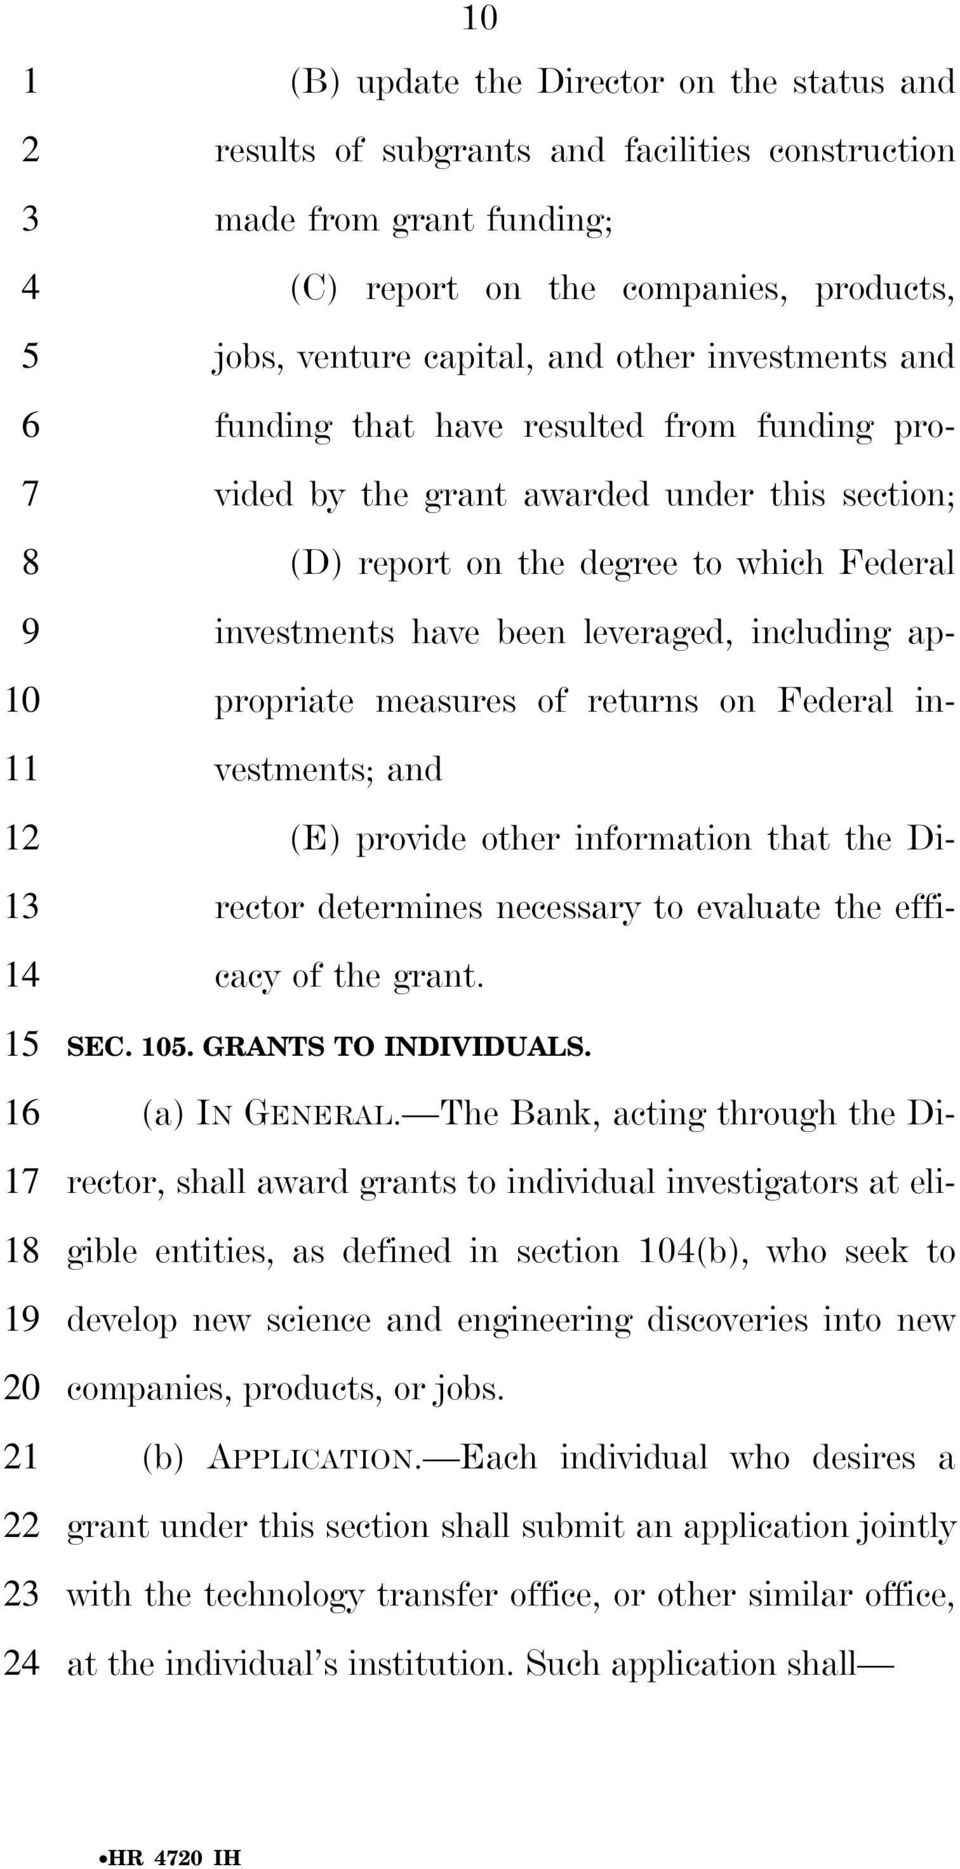 leveraged, including ap- propriate measures of returns on Federal in- vestments; and (E) provide other information that the Di- rector determines necessary to evaluate the effi- 1 cacy of the grant.